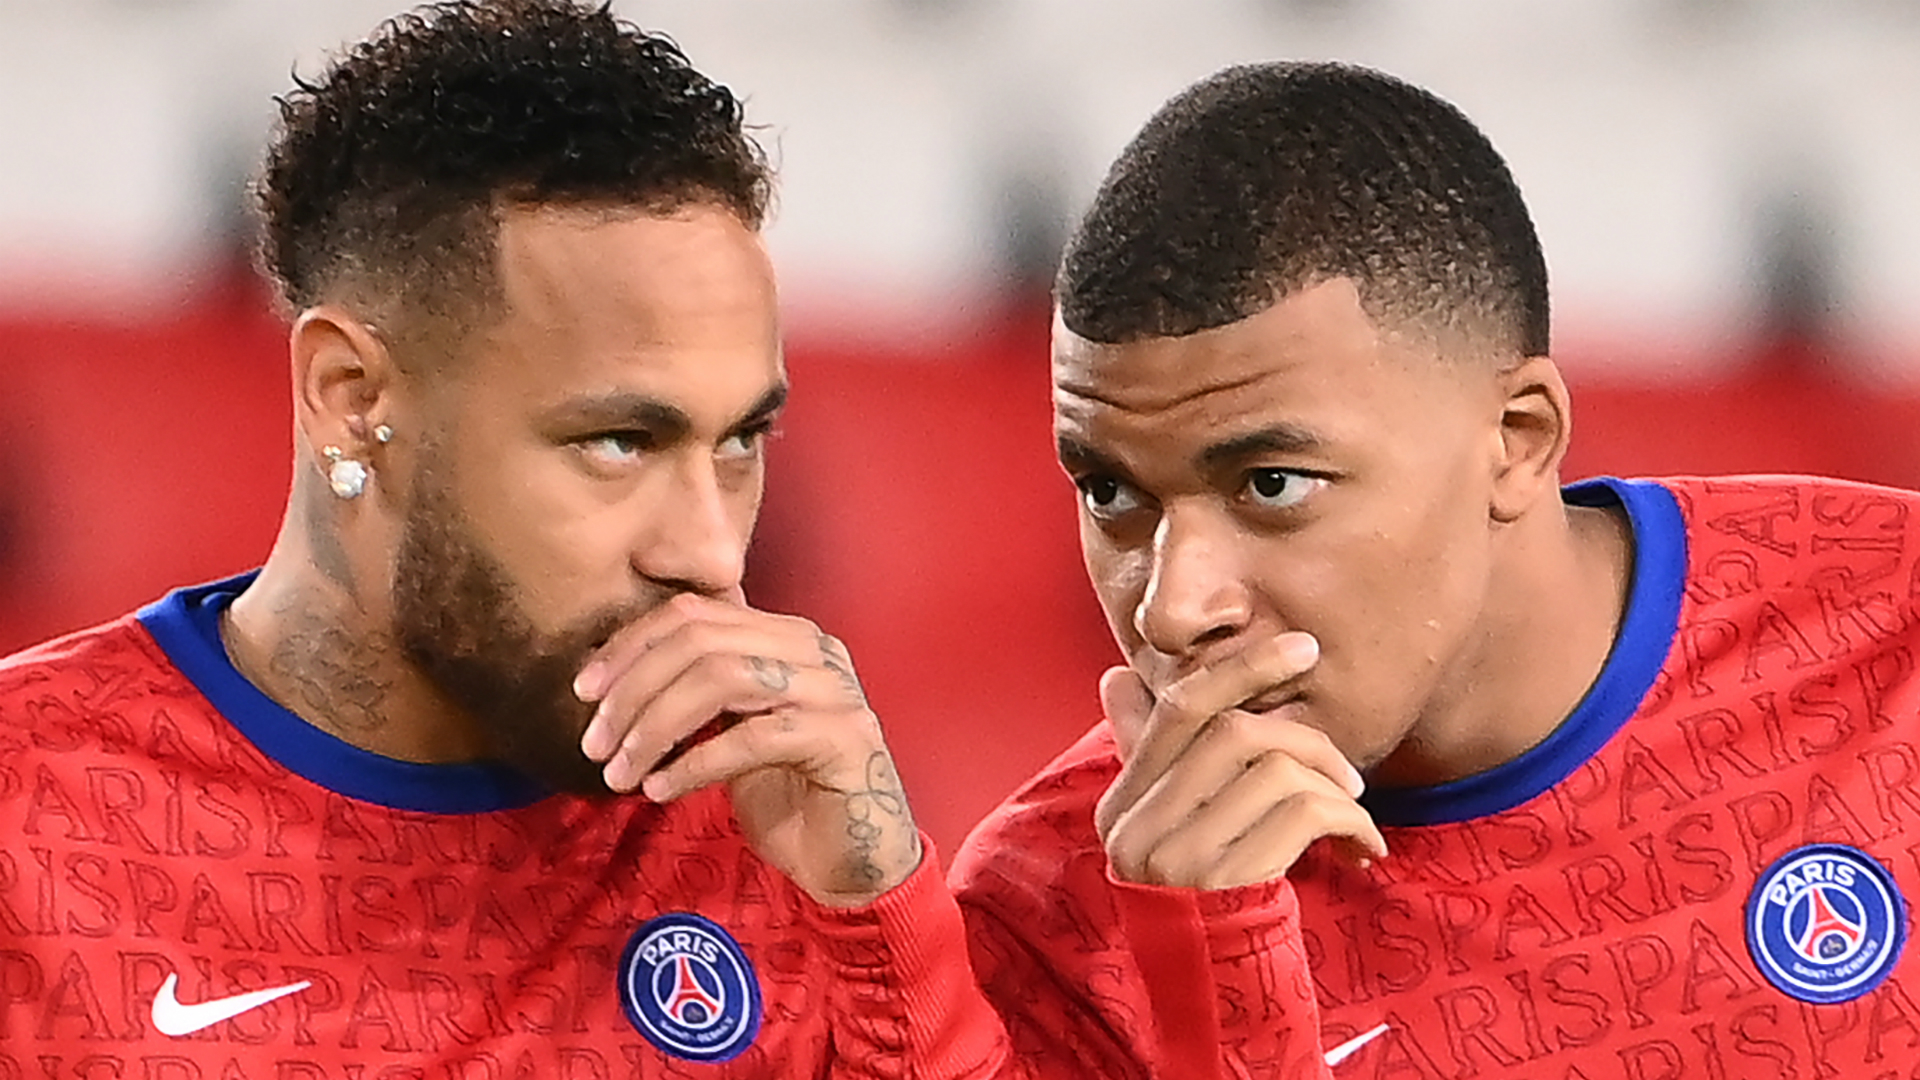 Guti calls for Madrid to sign Neymar and Mbappe as he pokes fun at Barca's Griezmann